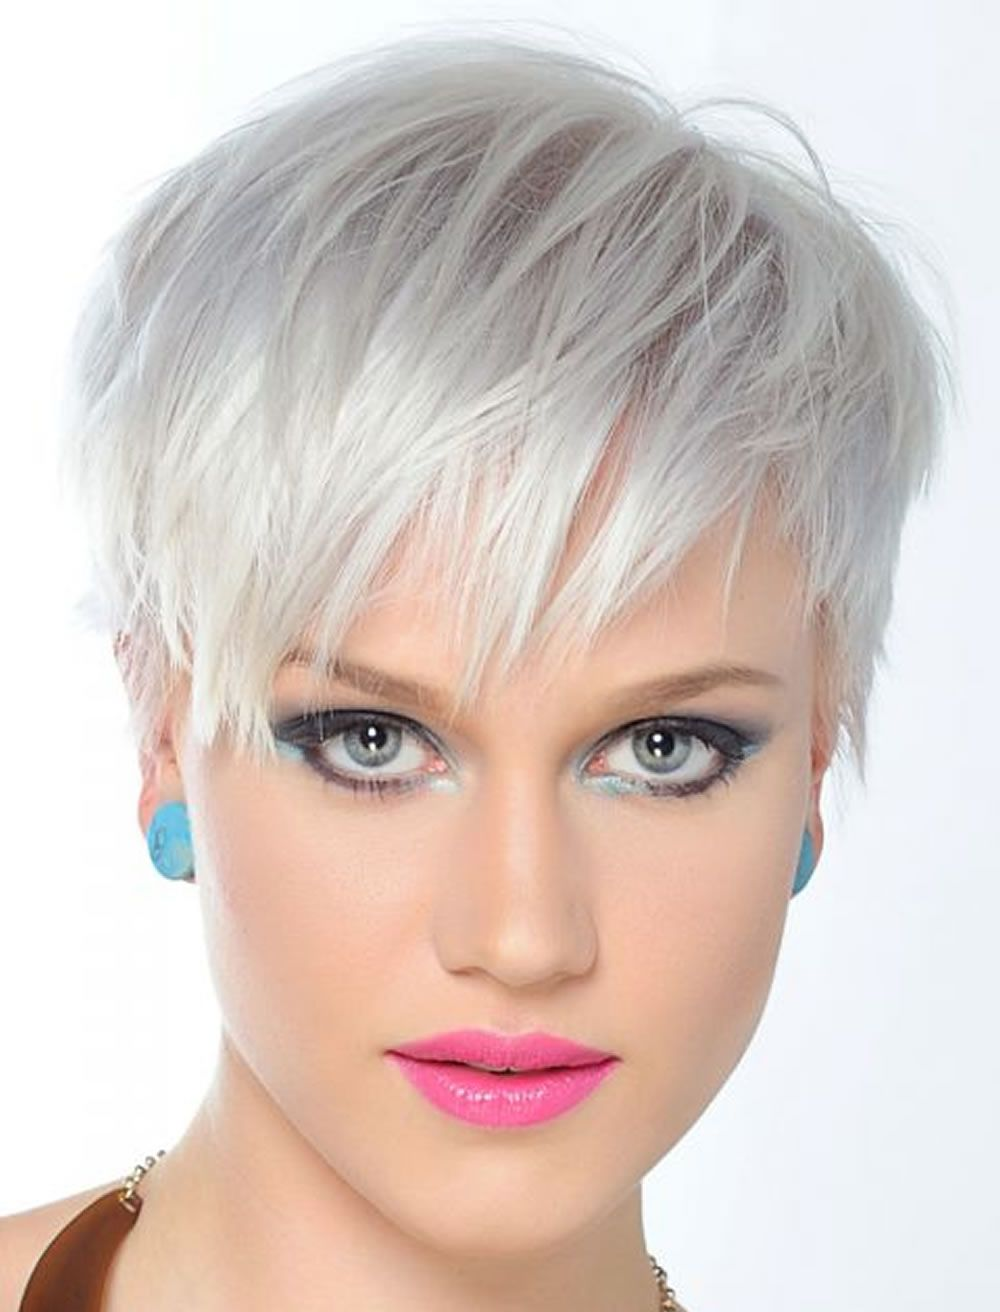 Einfache Frisuren Fur Kurzes Haar 2018 2019 Cute Cuts